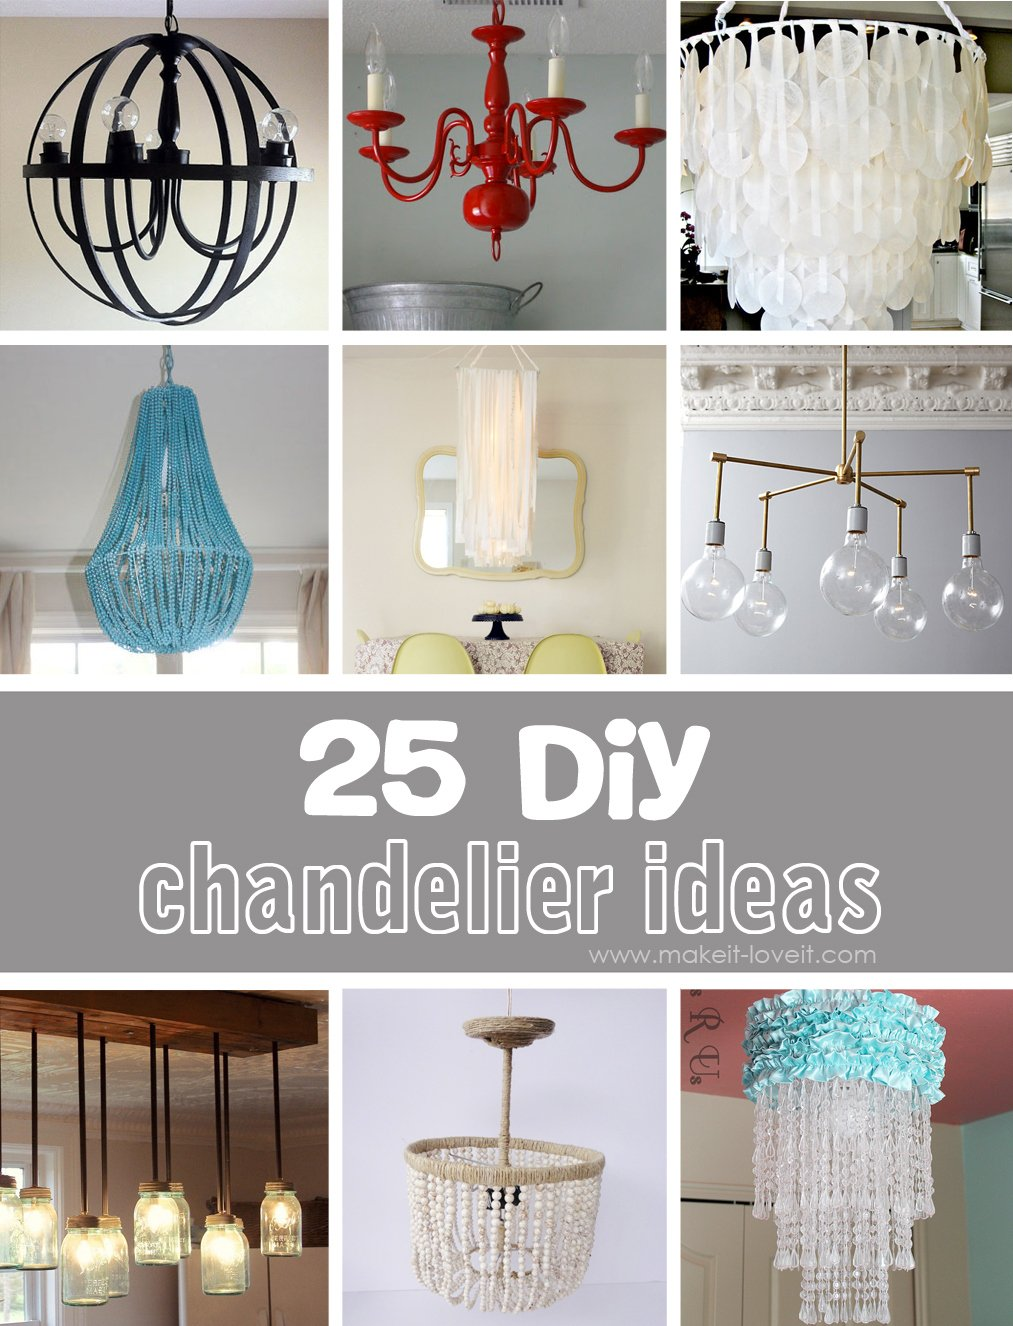 25 diy chandelier ideas make it and love it 25 diy chandelier ideas solutioingenieria Images